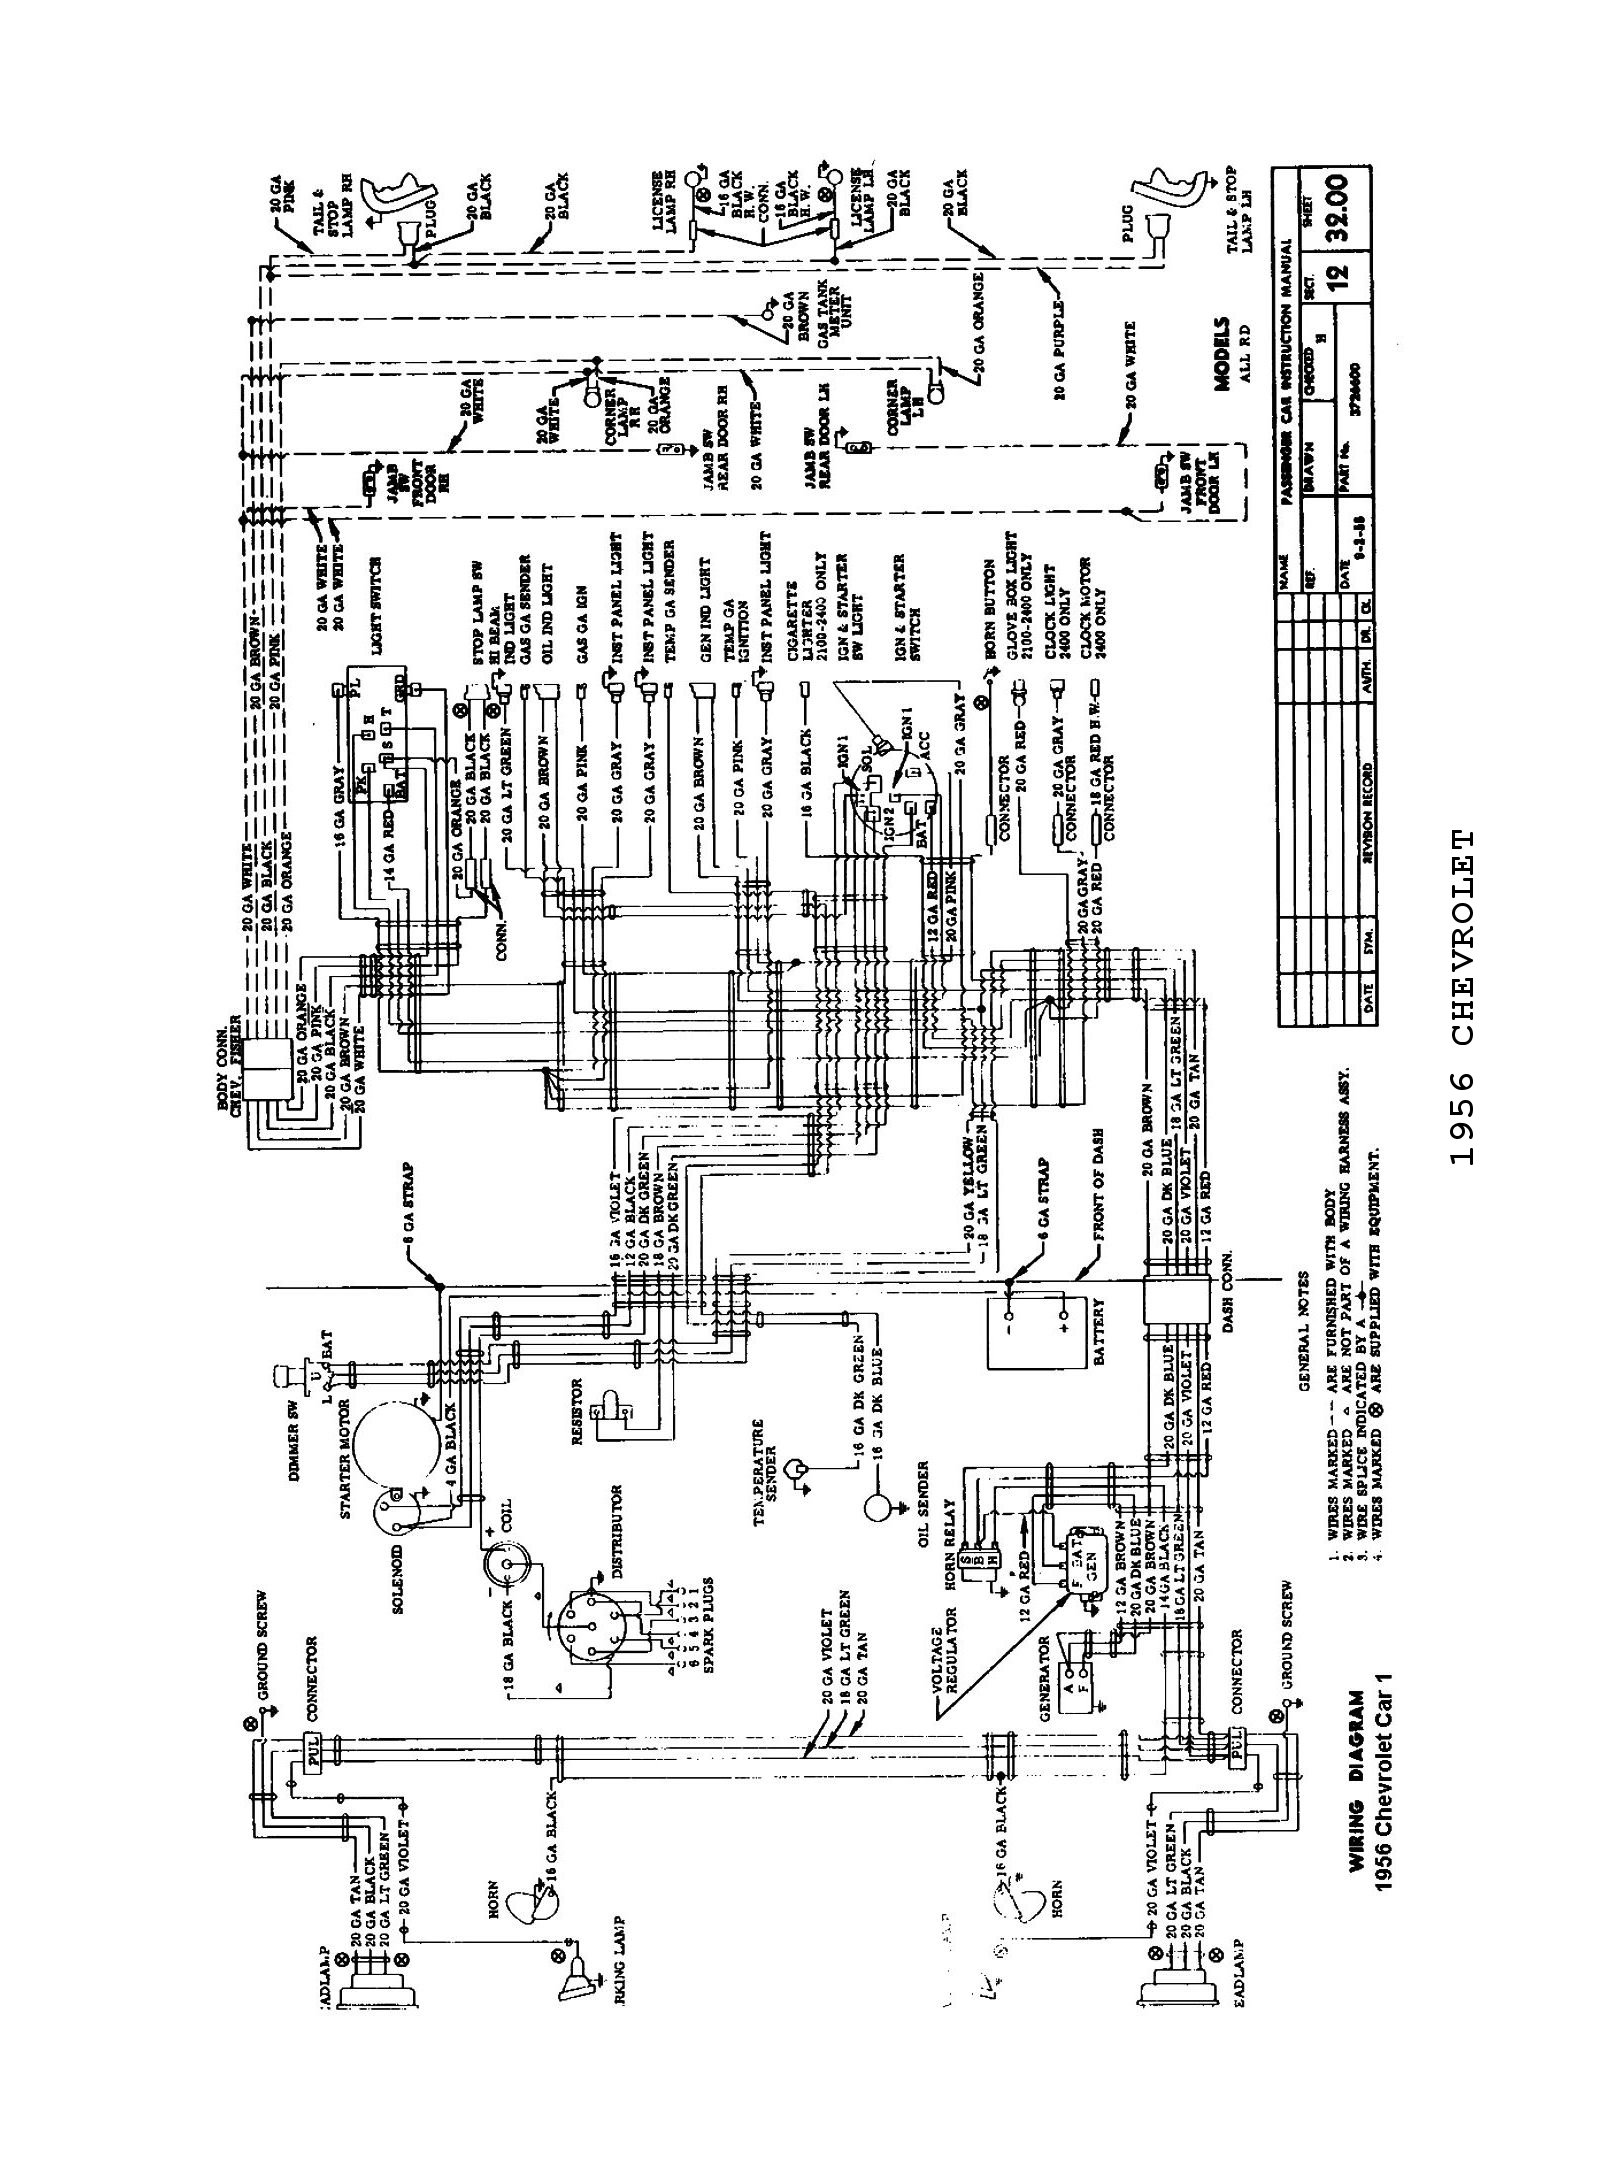 chevy alternator wire diagram wiring diagram and schematic 1956 chevrolet fuse block wiring help please update pics and info page 2 ford